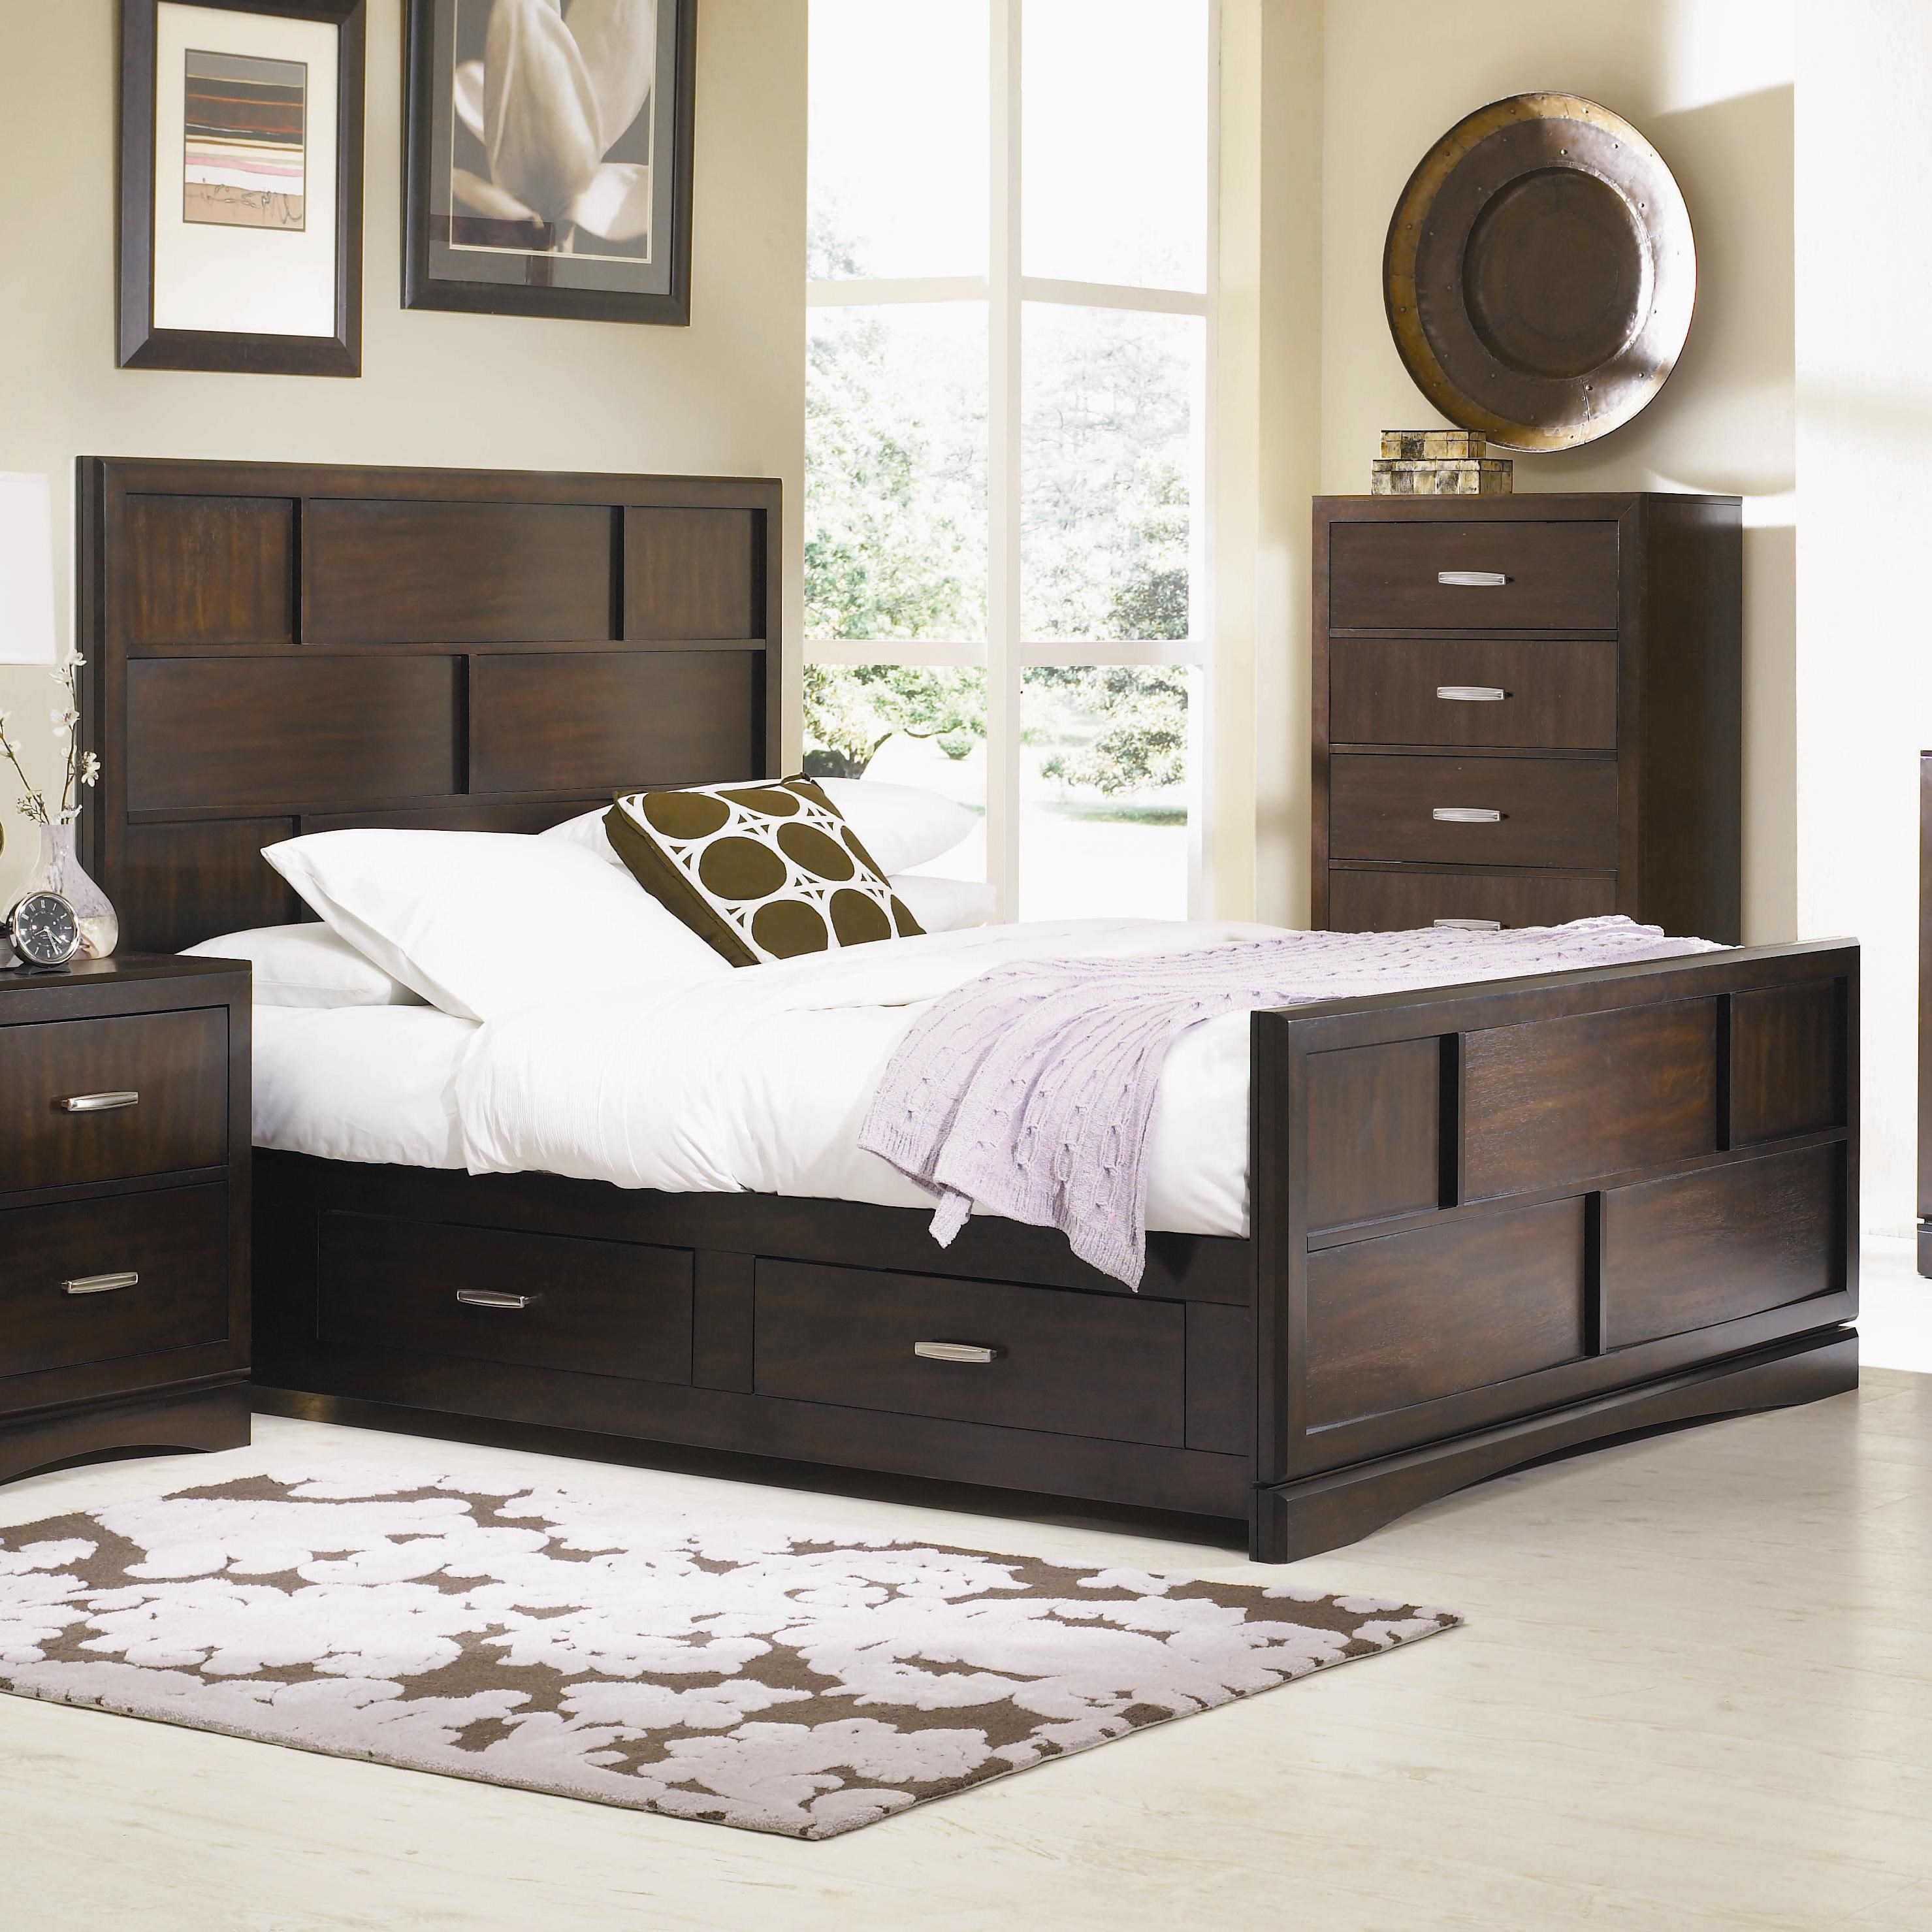 king size panel bed. Najarian Key West King-Size Panel Bed With Grid Detail And Storage Drawers King Size